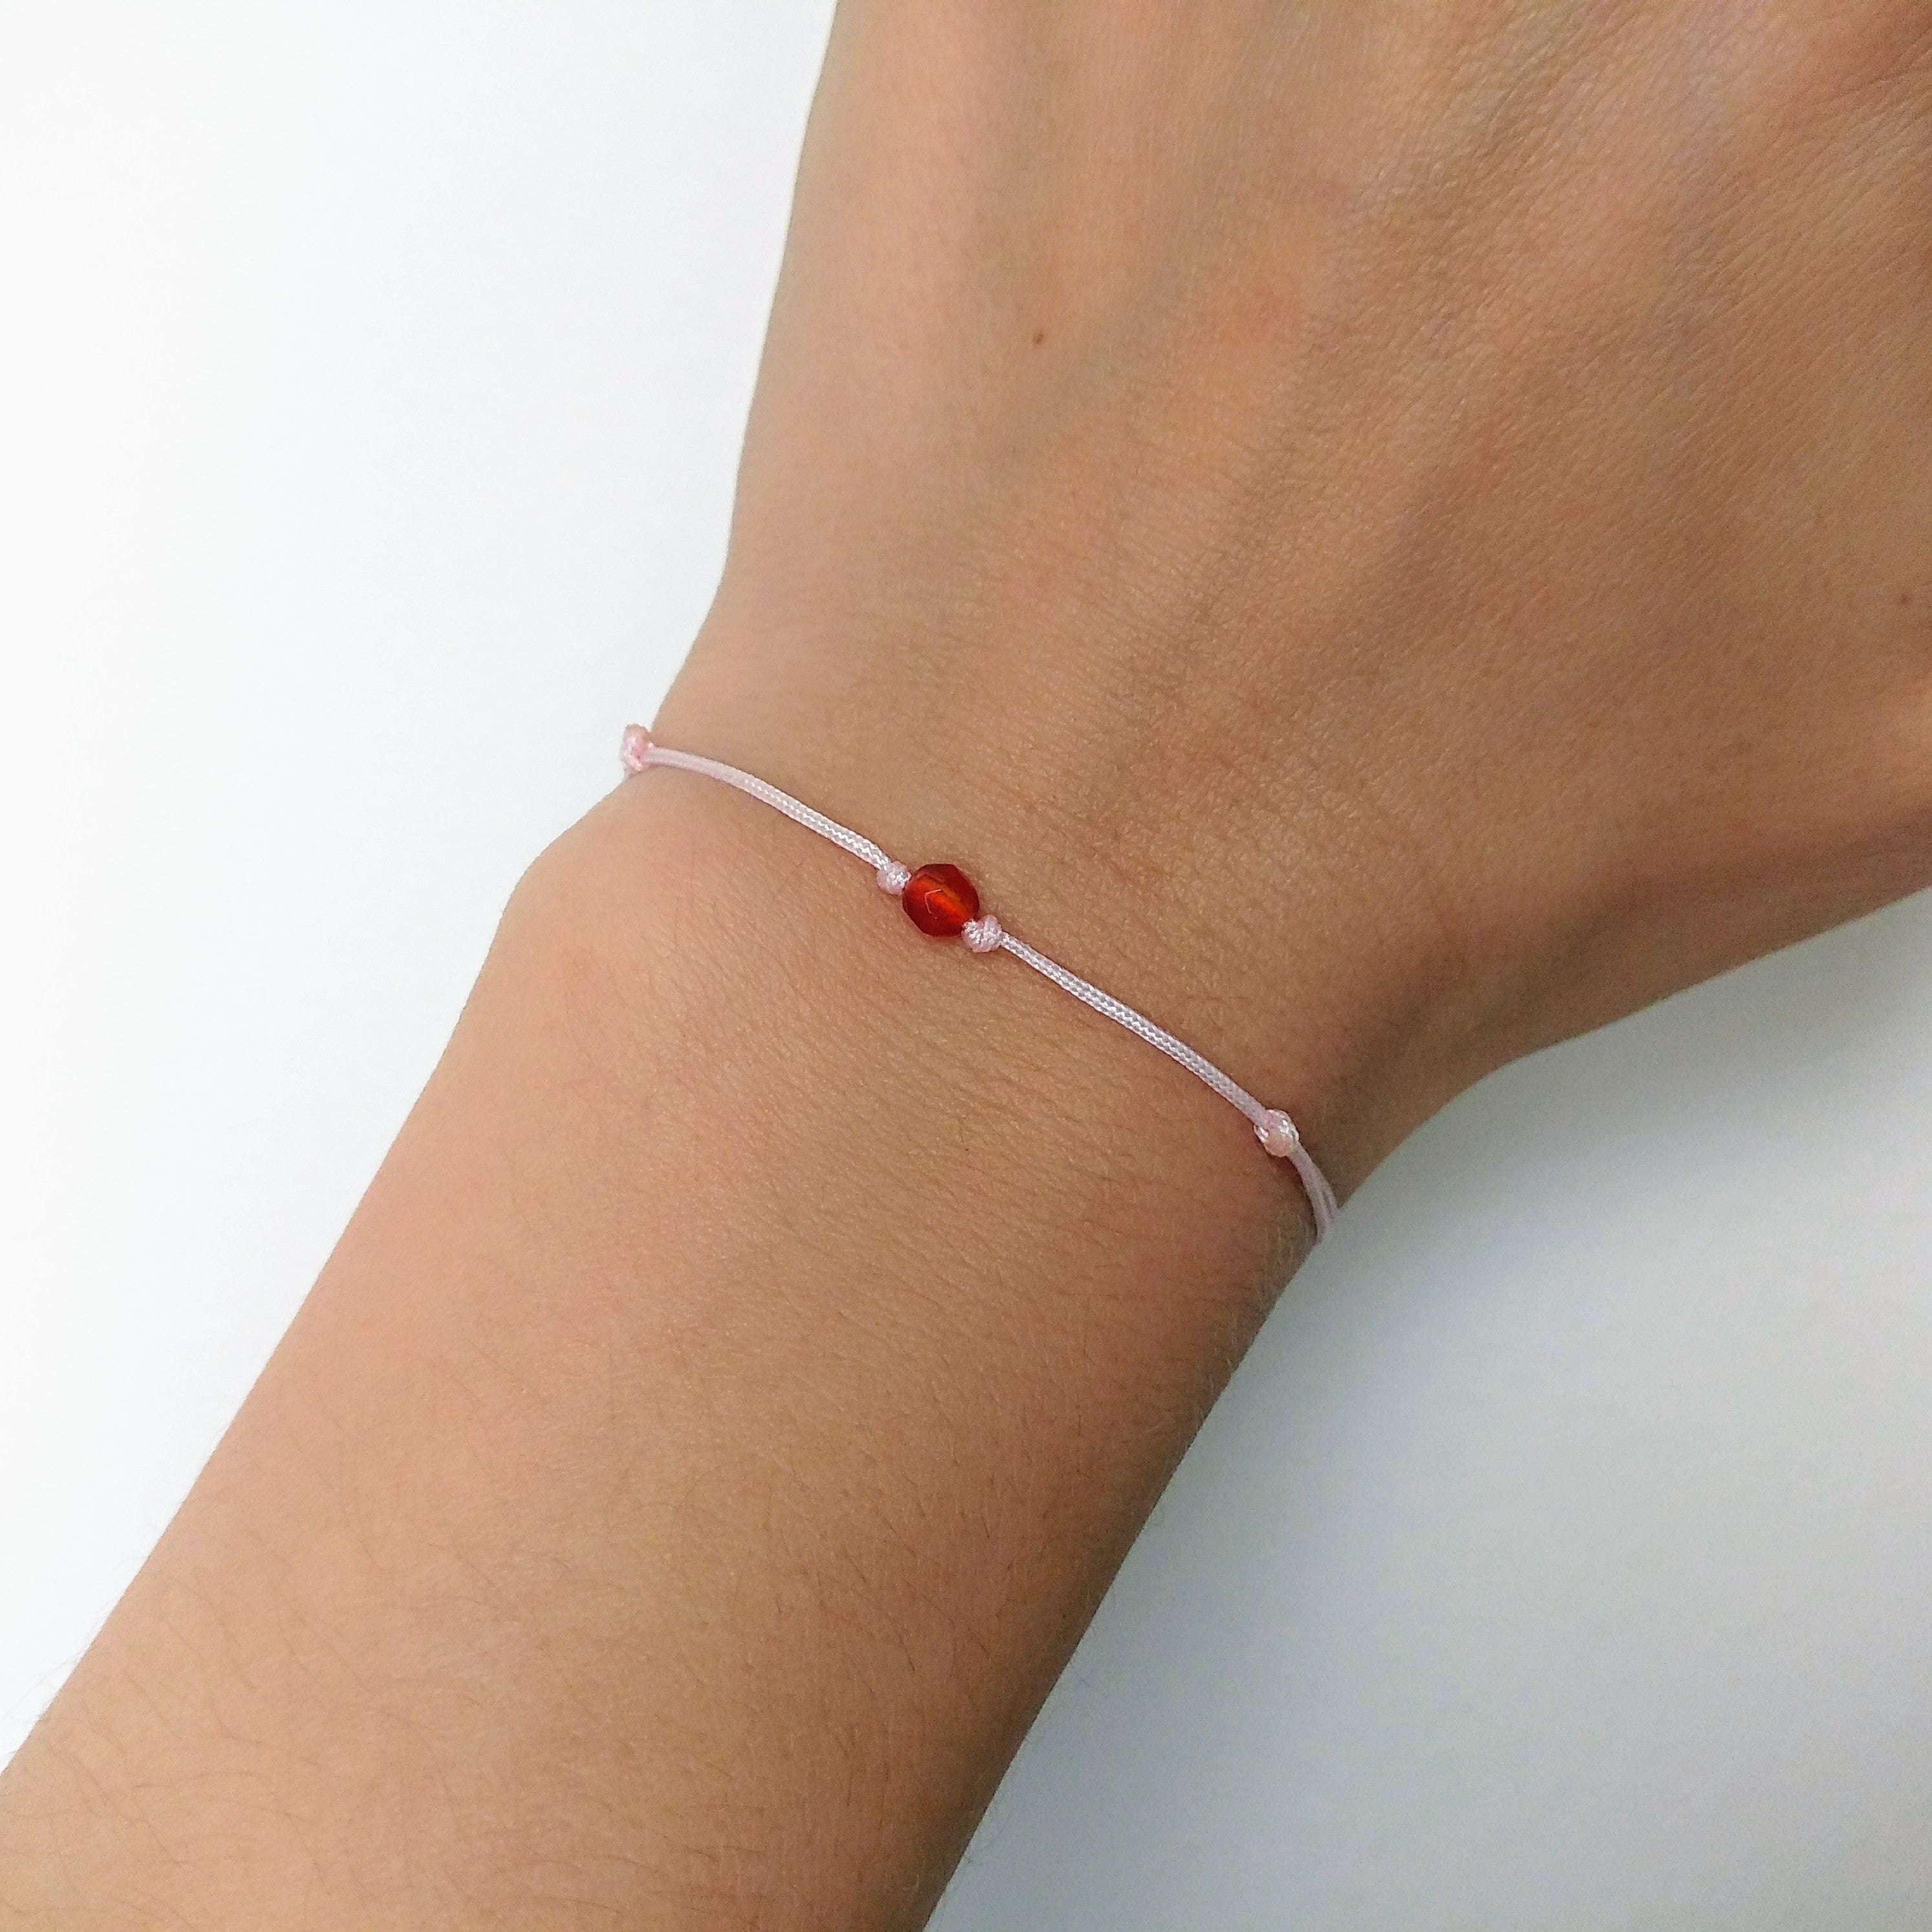 Minimalistisches Karneol Armband rosa rot